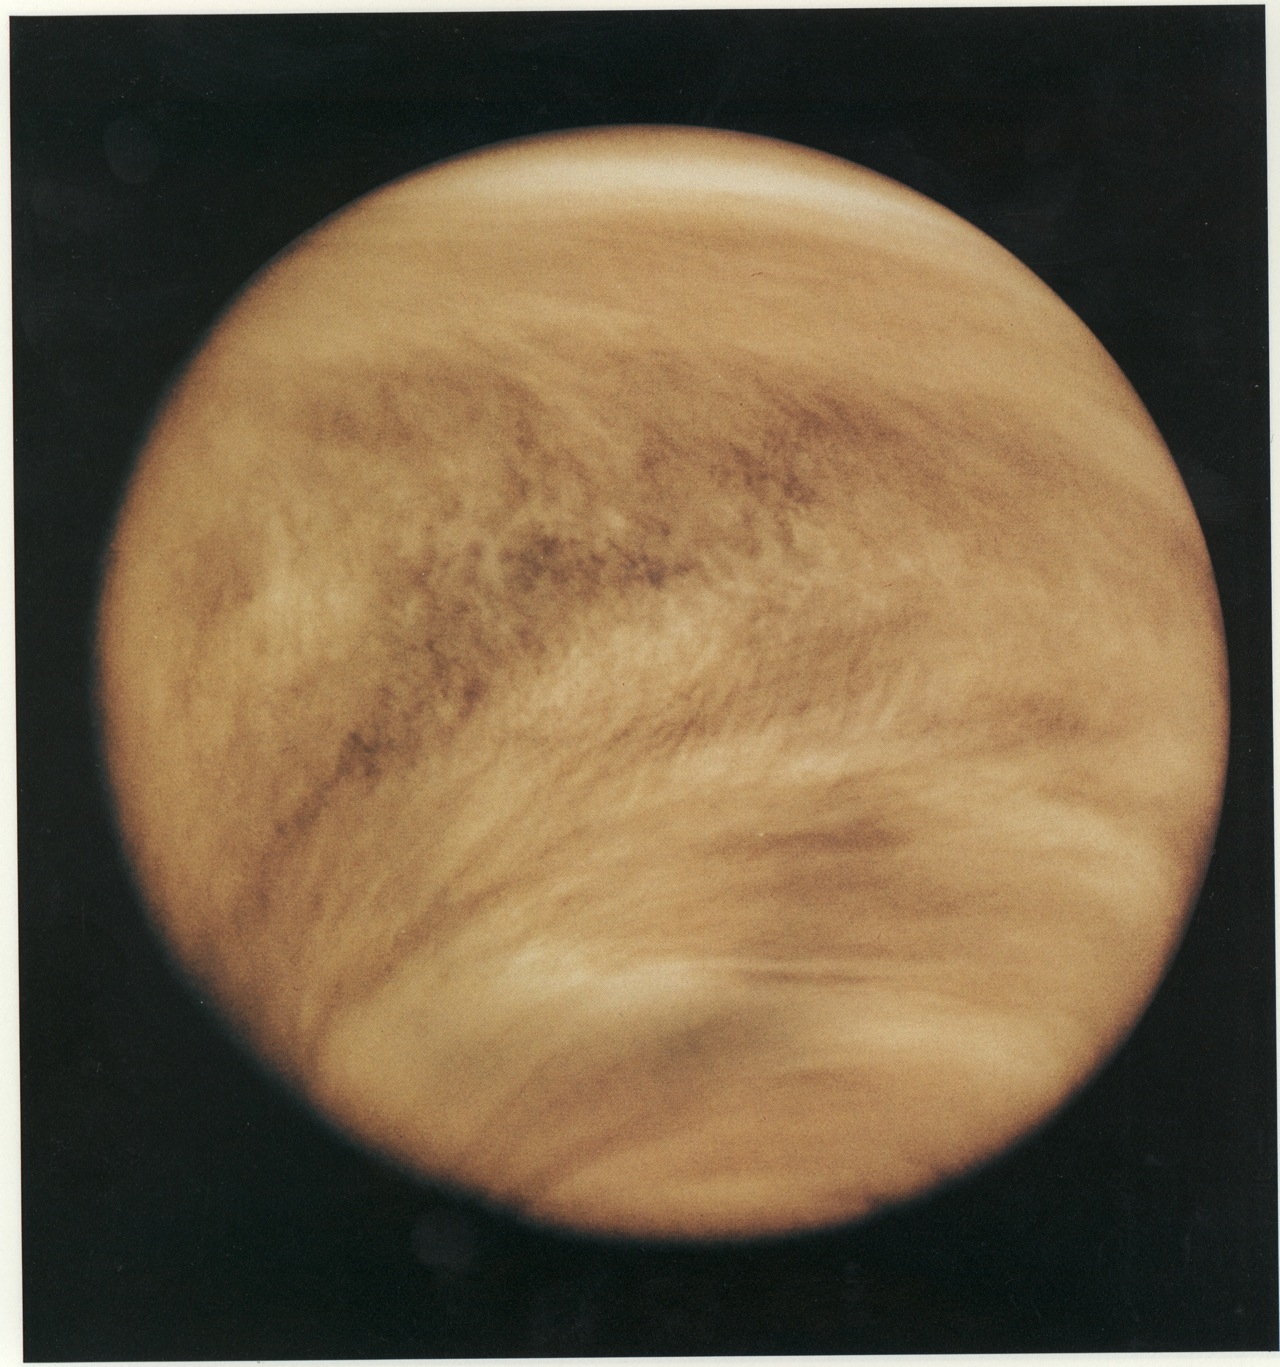 venus the planet is brown why - photo #19